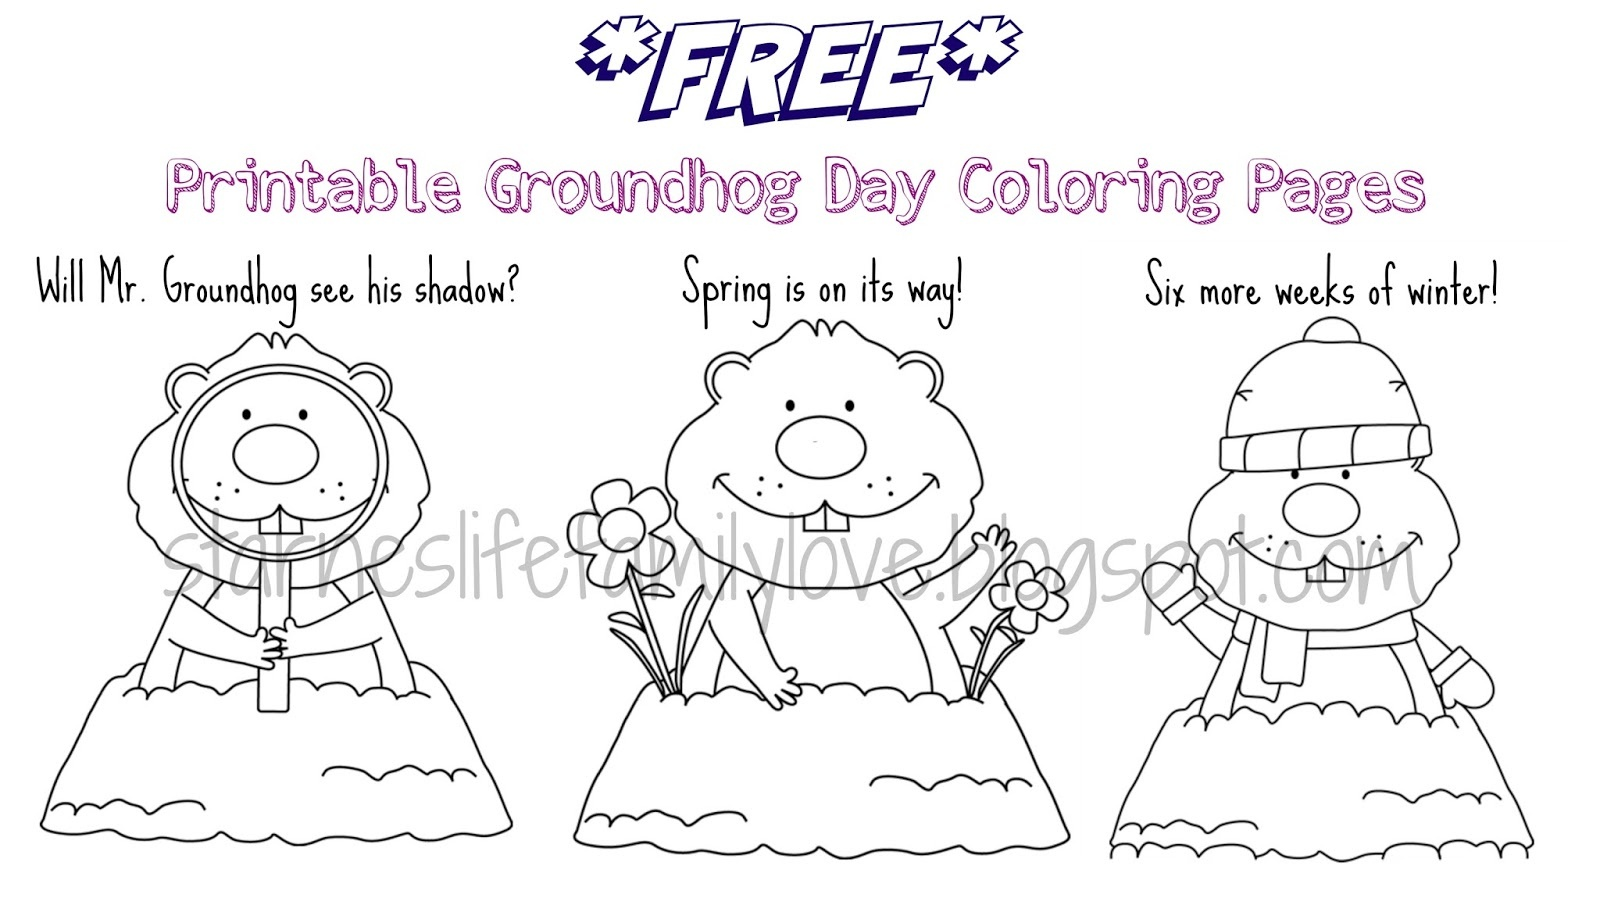 Life. Family. Love.: Groundhog Day Fun Plus *free* Printables! - Free Groundhog Day Printables